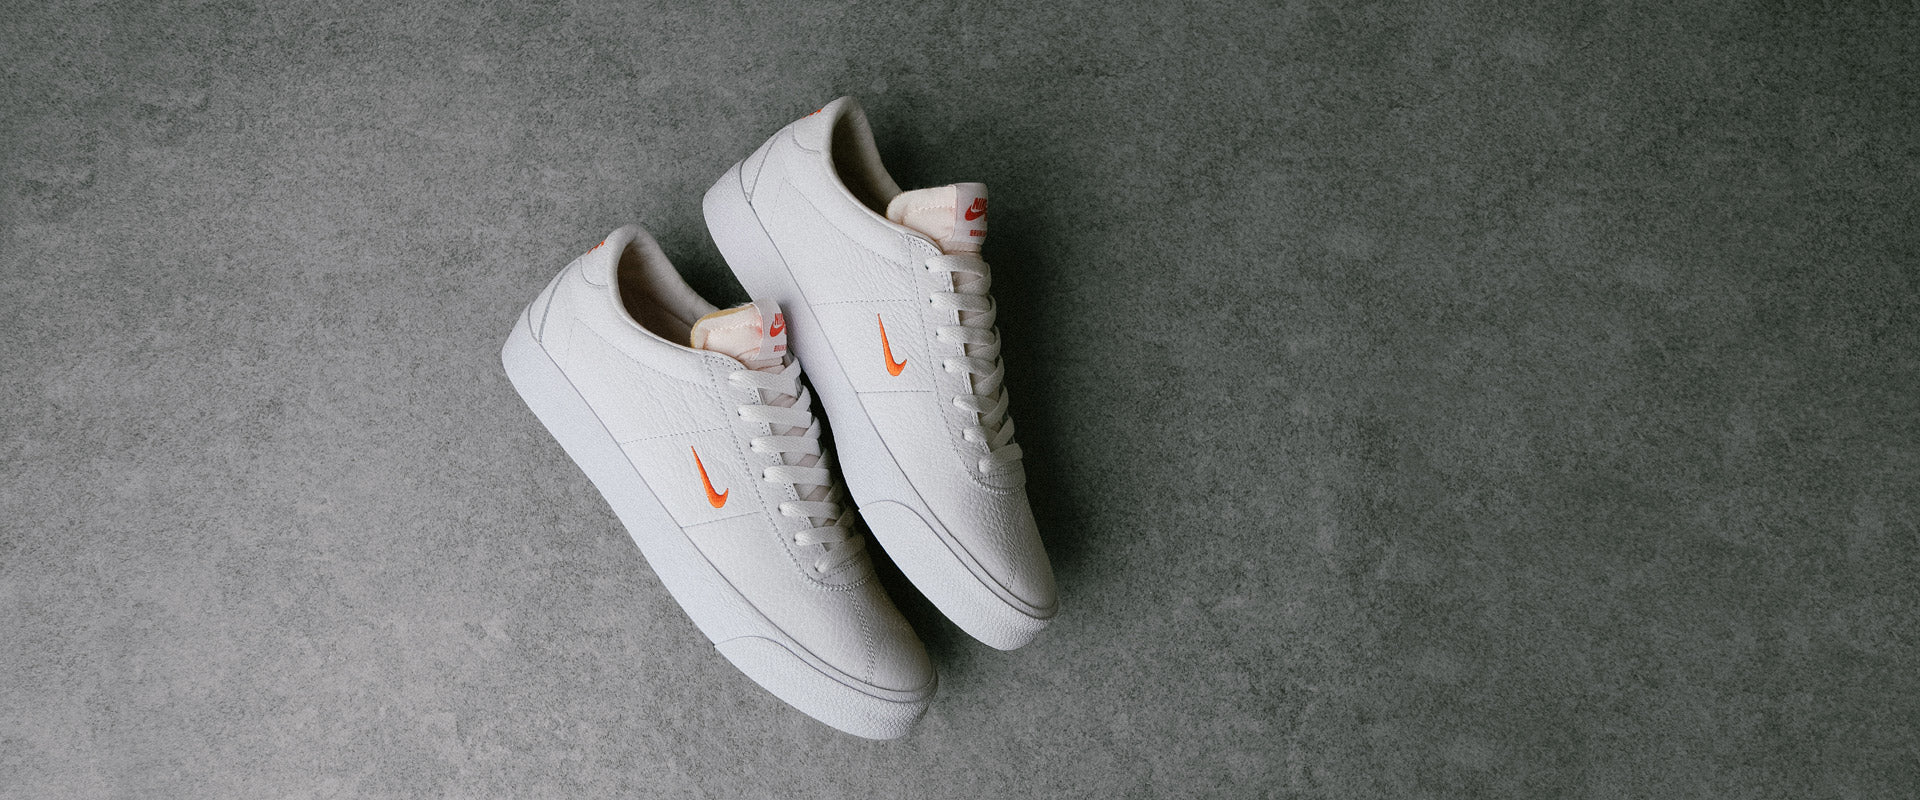 Nike SB Bruin Ultra - White / Team Orange